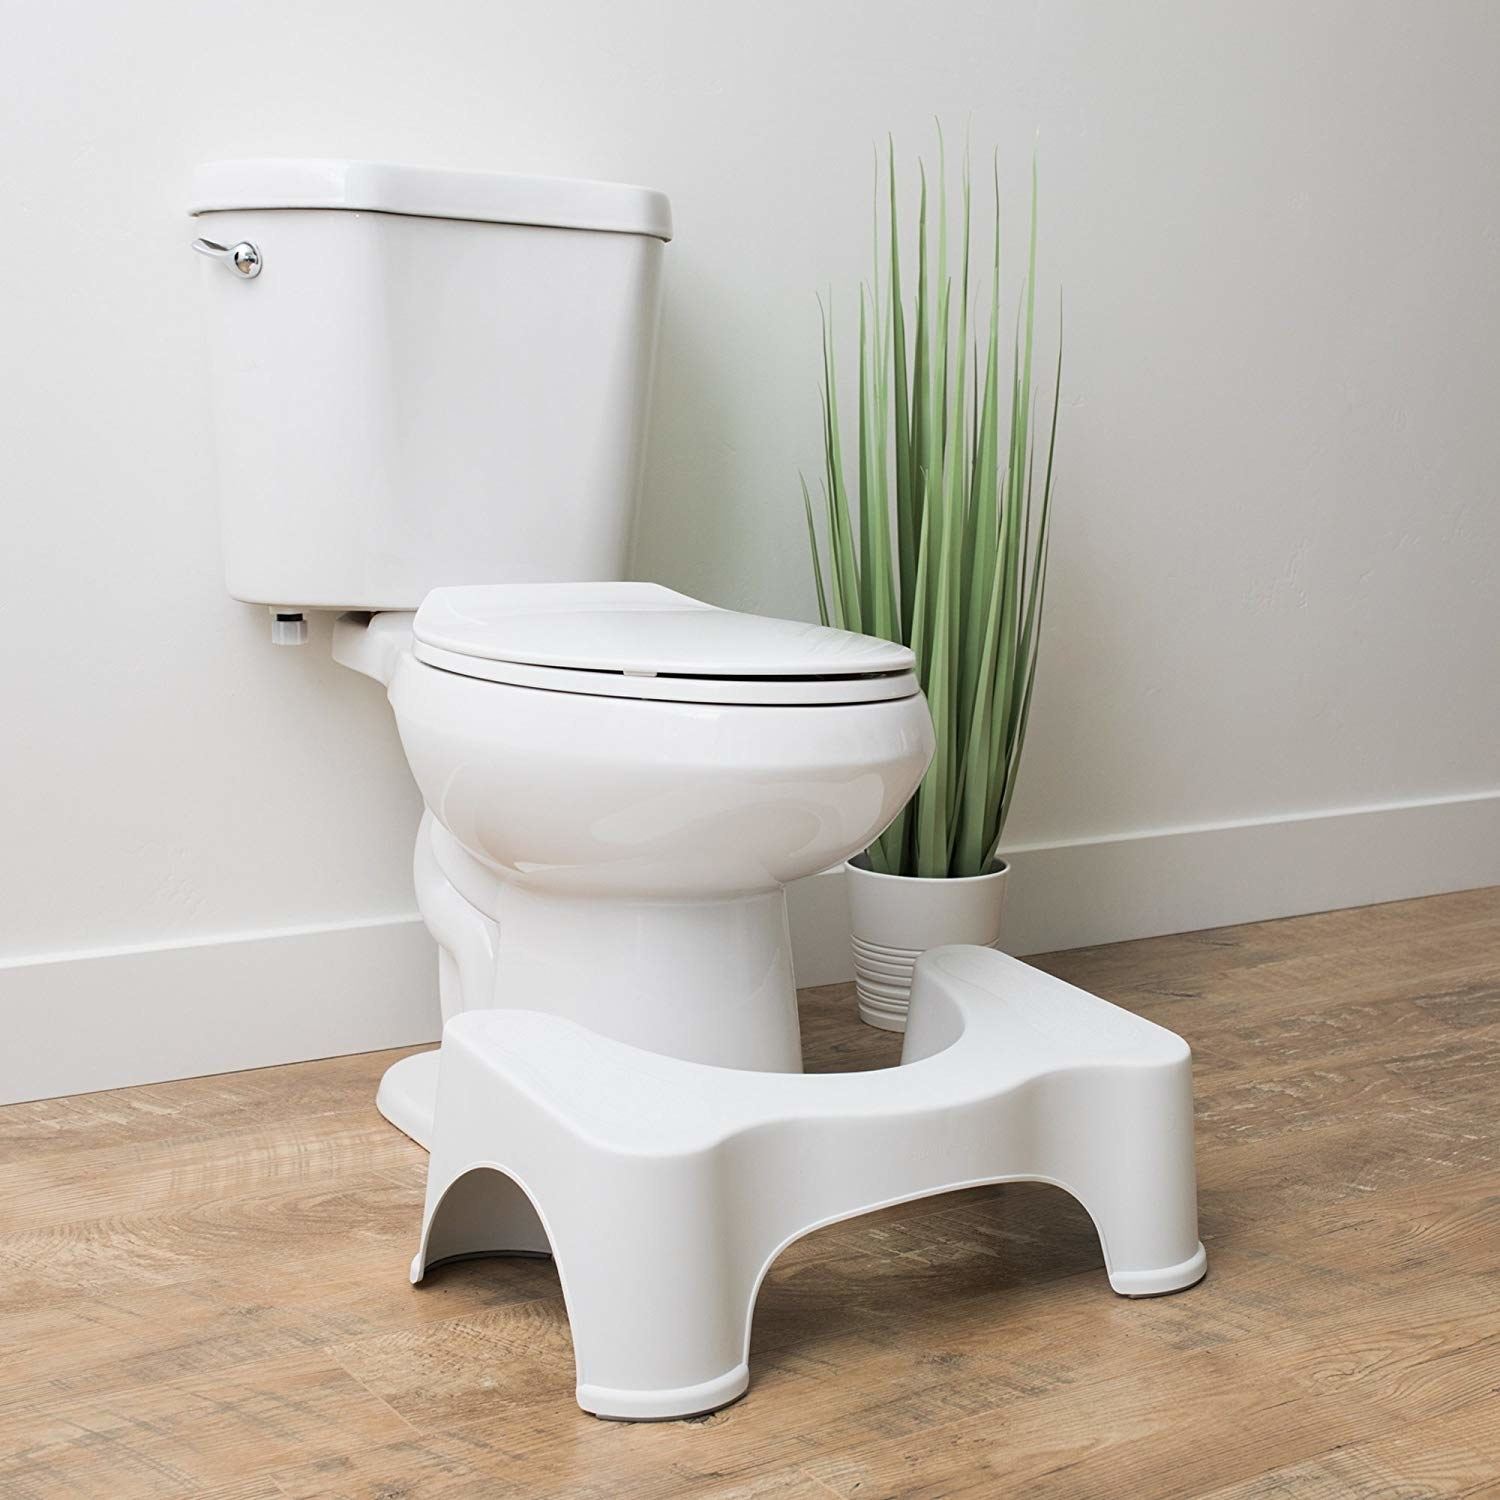 A white stool that curves around your toilet tank to elevate your legs while using the bathroom